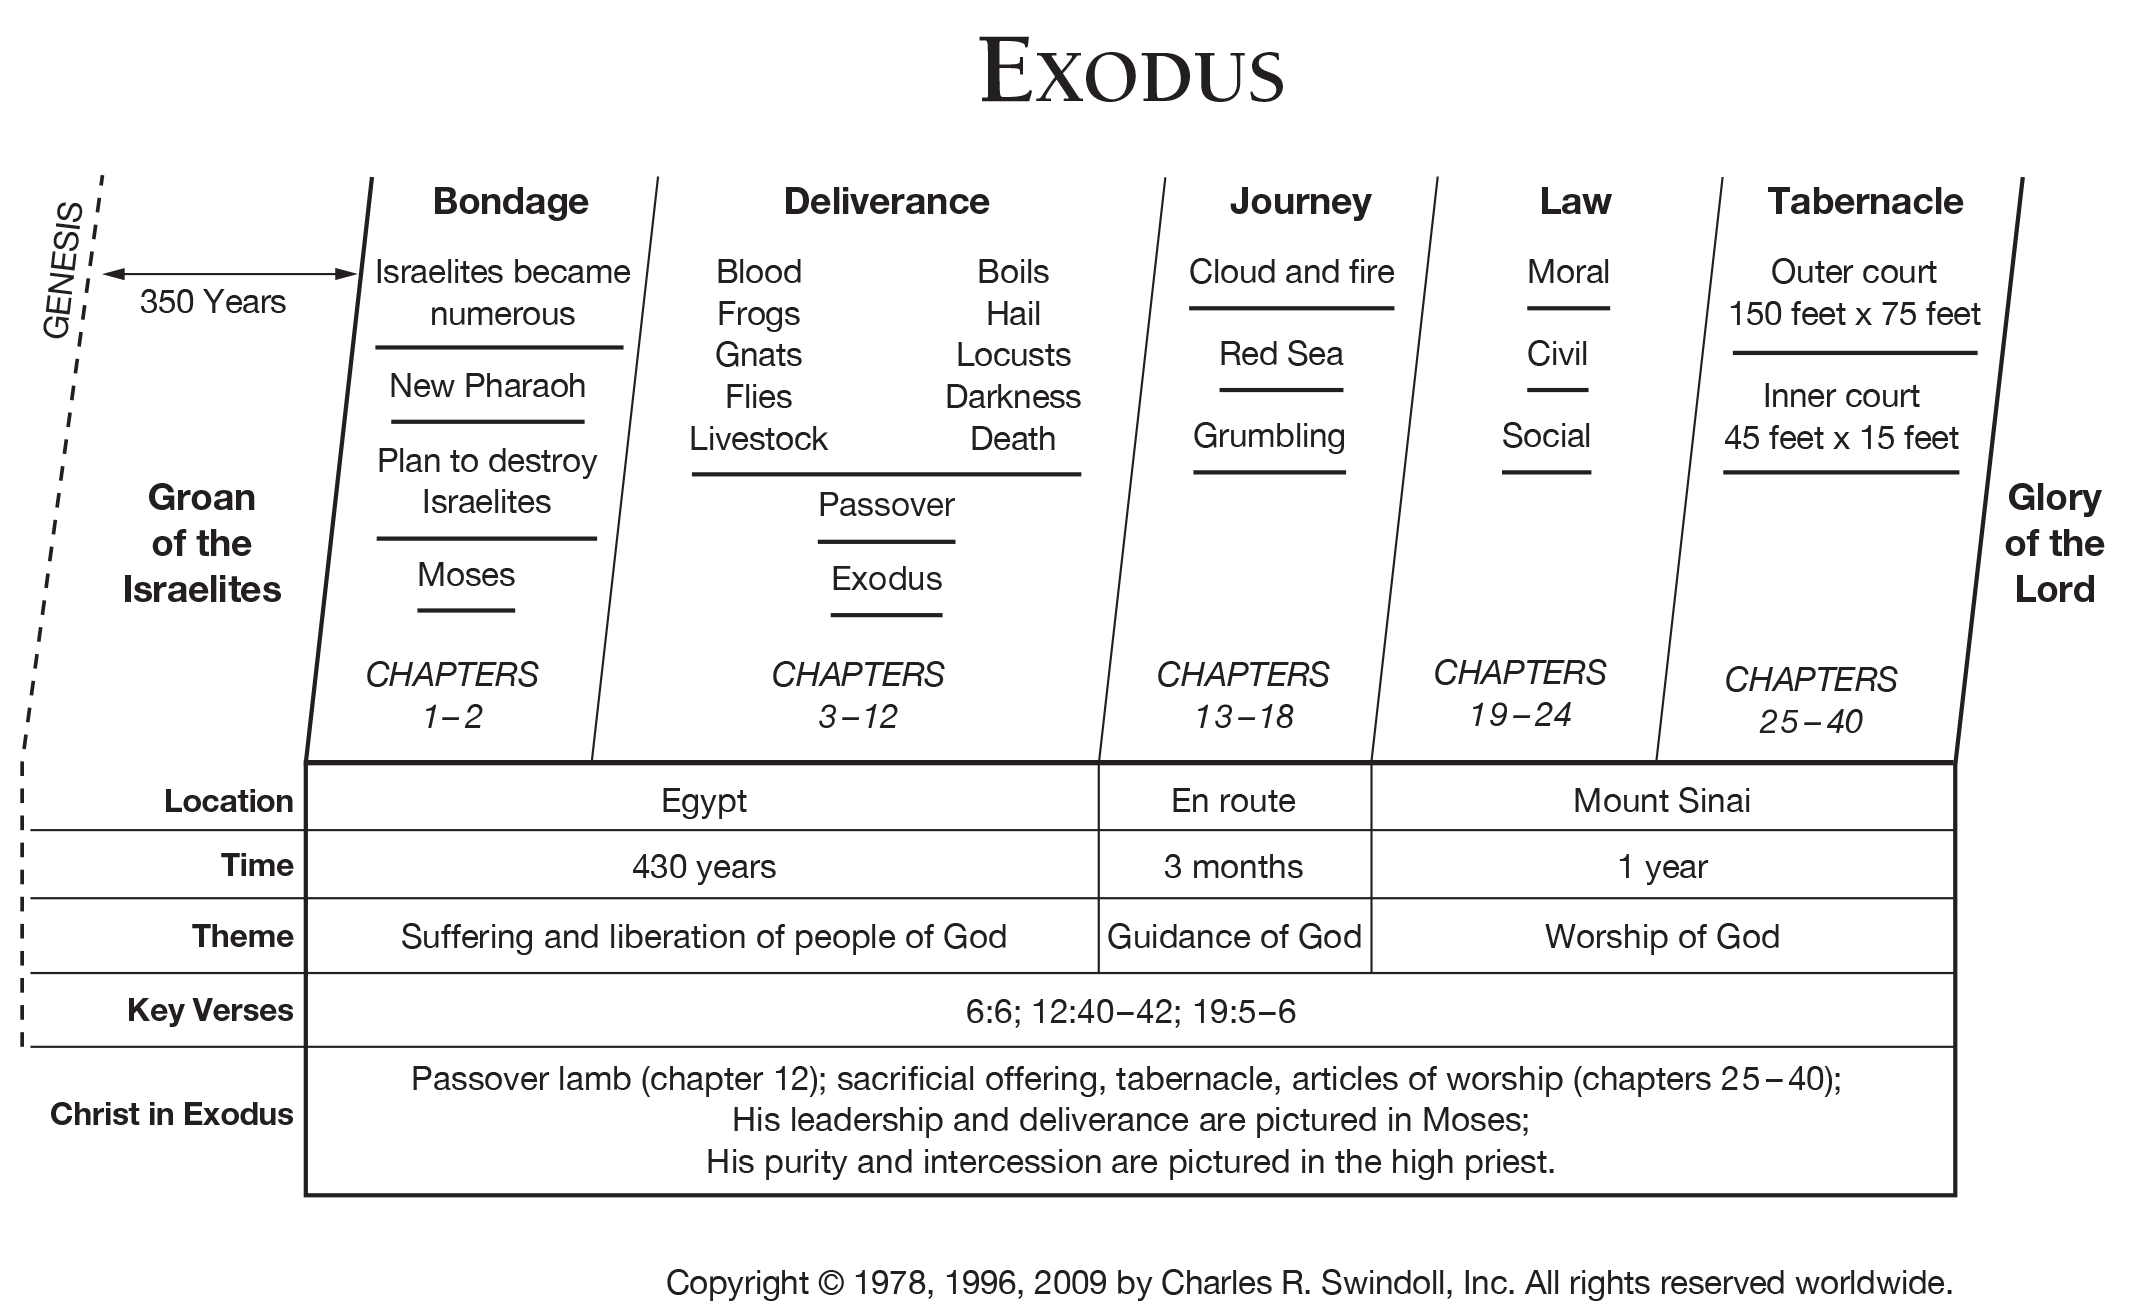 Image result for exodus book chart